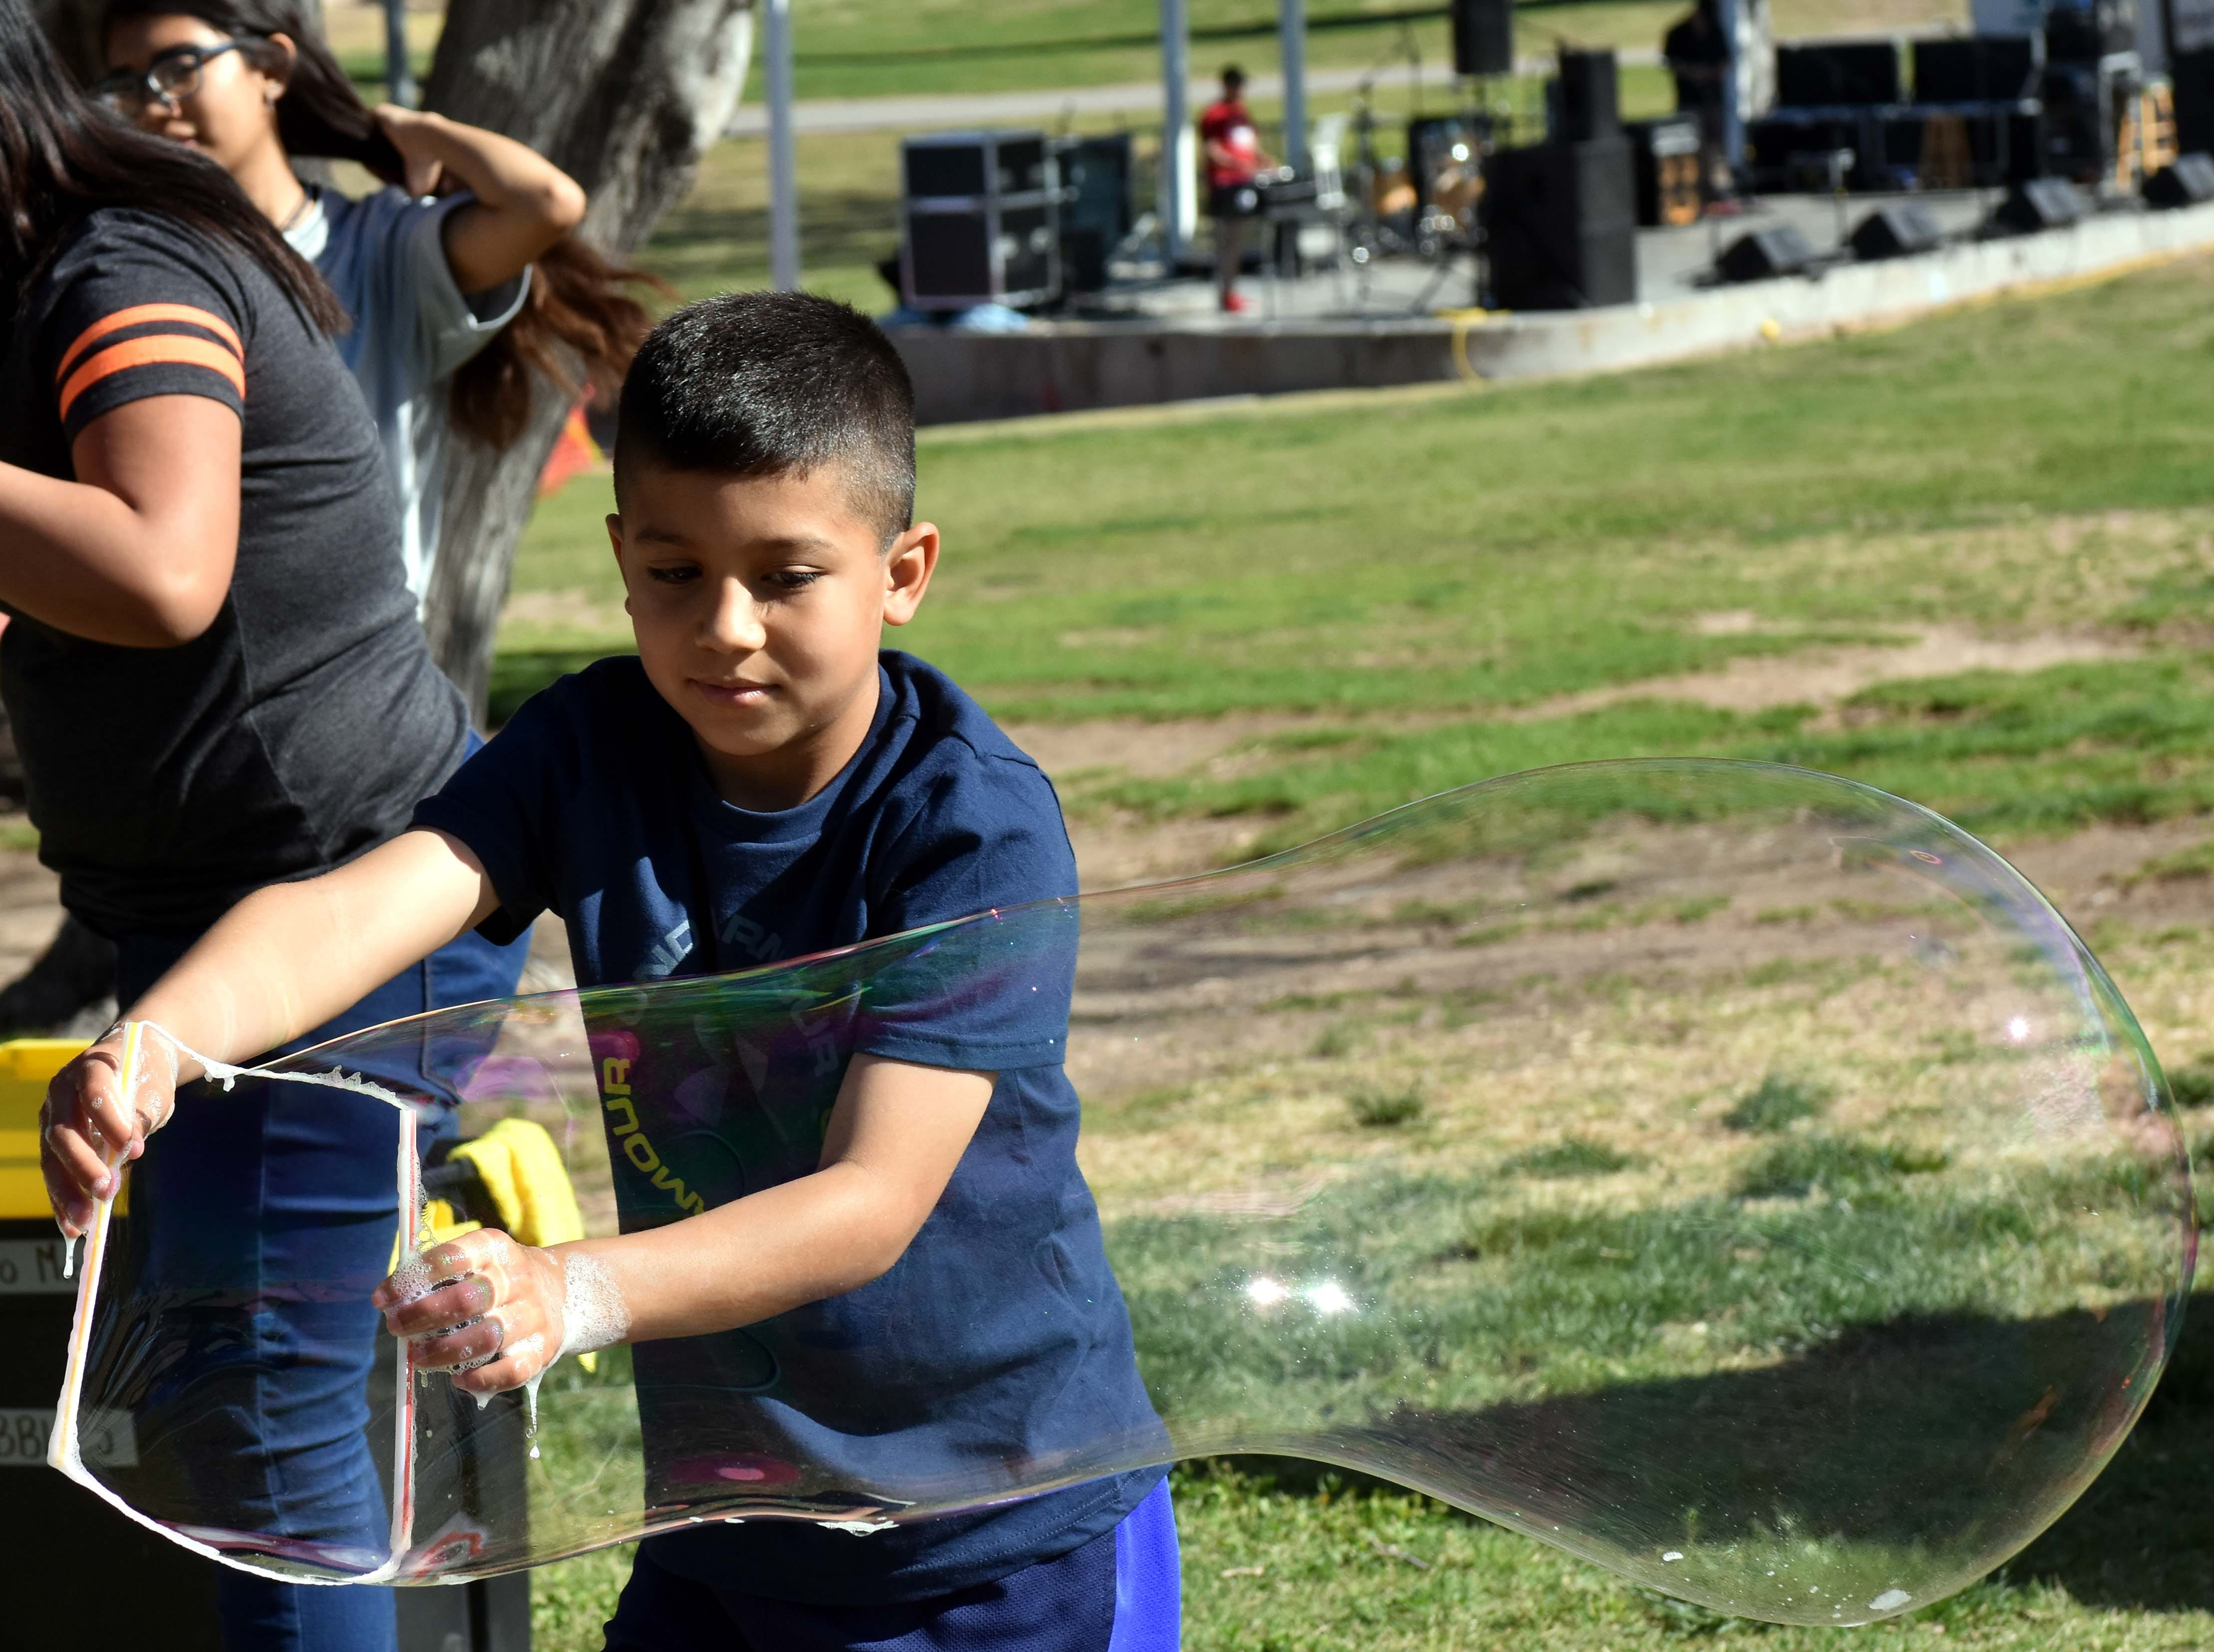 Noah Benavidez shows off his bubble-making skills during this year's SpringFest at Young Park on Saturday, April 20, 2019.